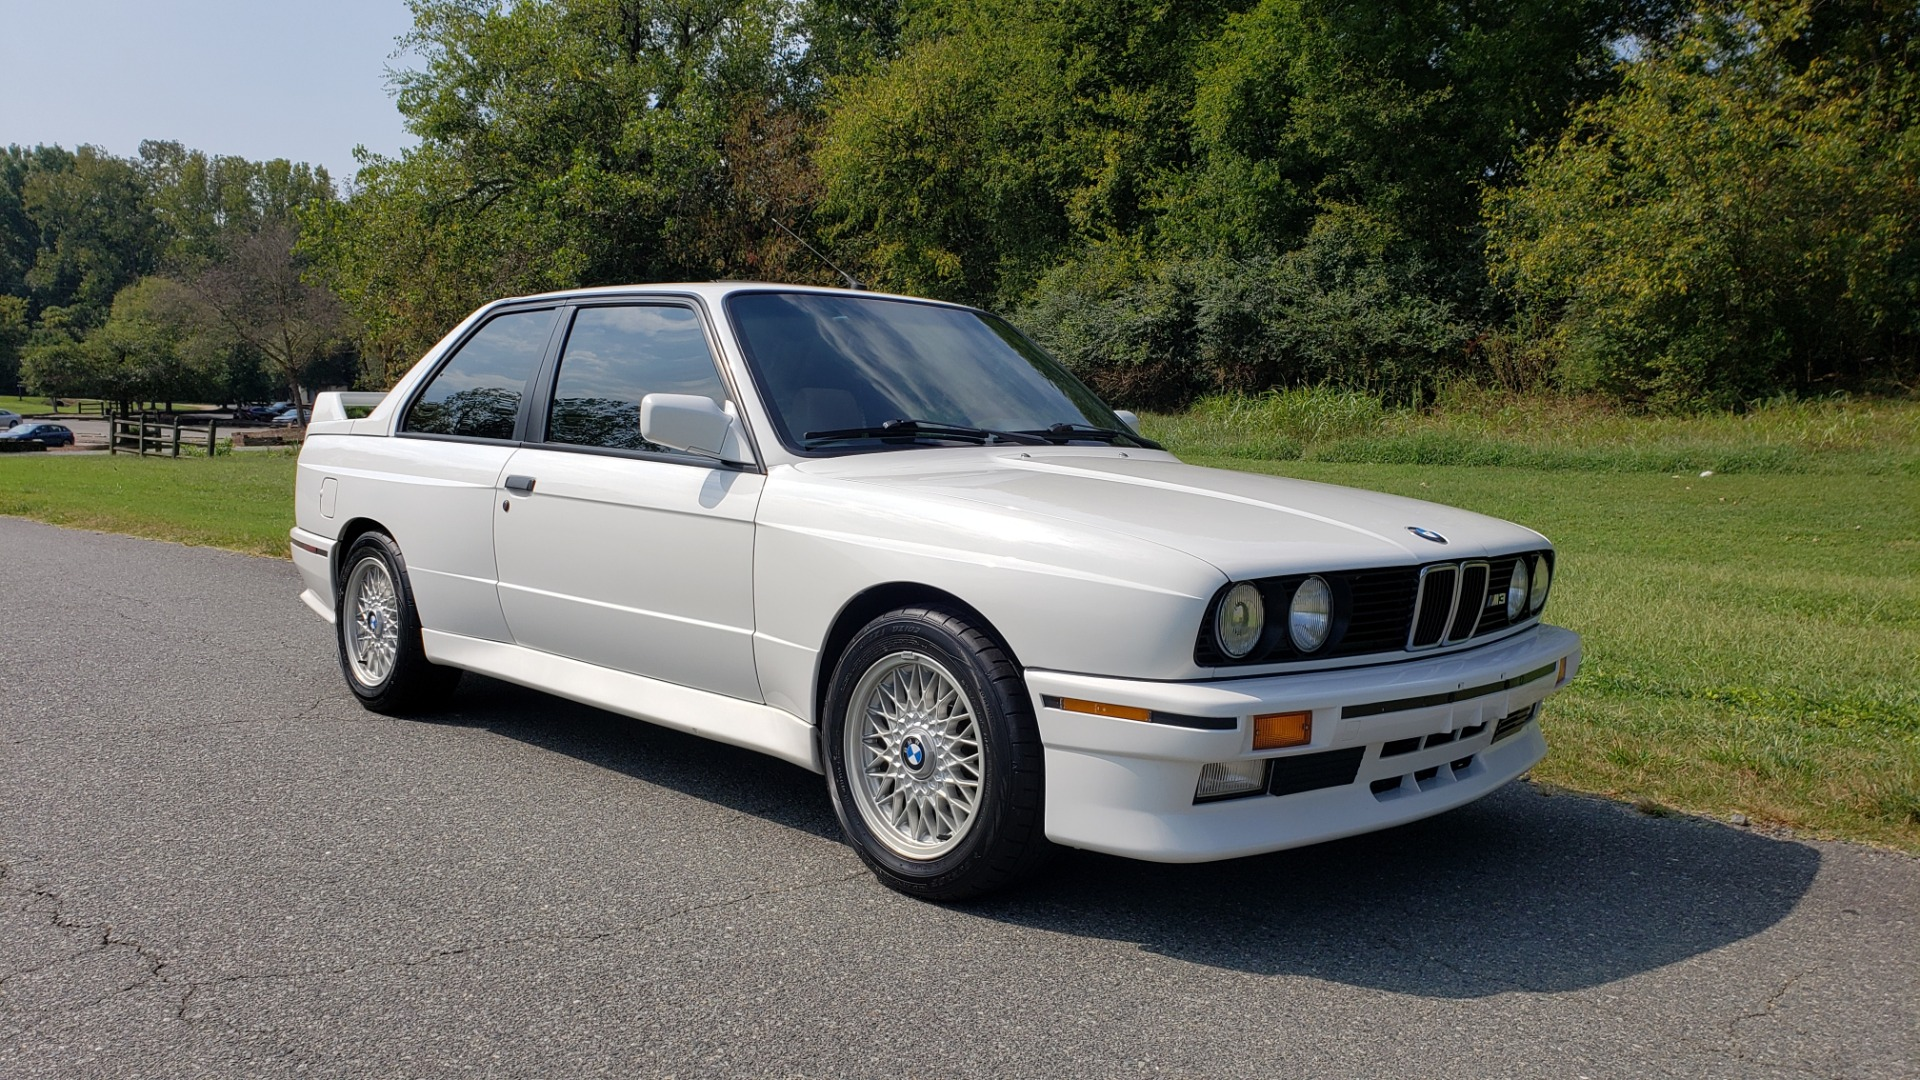 Used 1989 BMW M3 COUPE 2DR / 5-SPEED MAN / LOW MILES / SUPER CLEAN for sale Sold at Formula Imports in Charlotte NC 28227 28